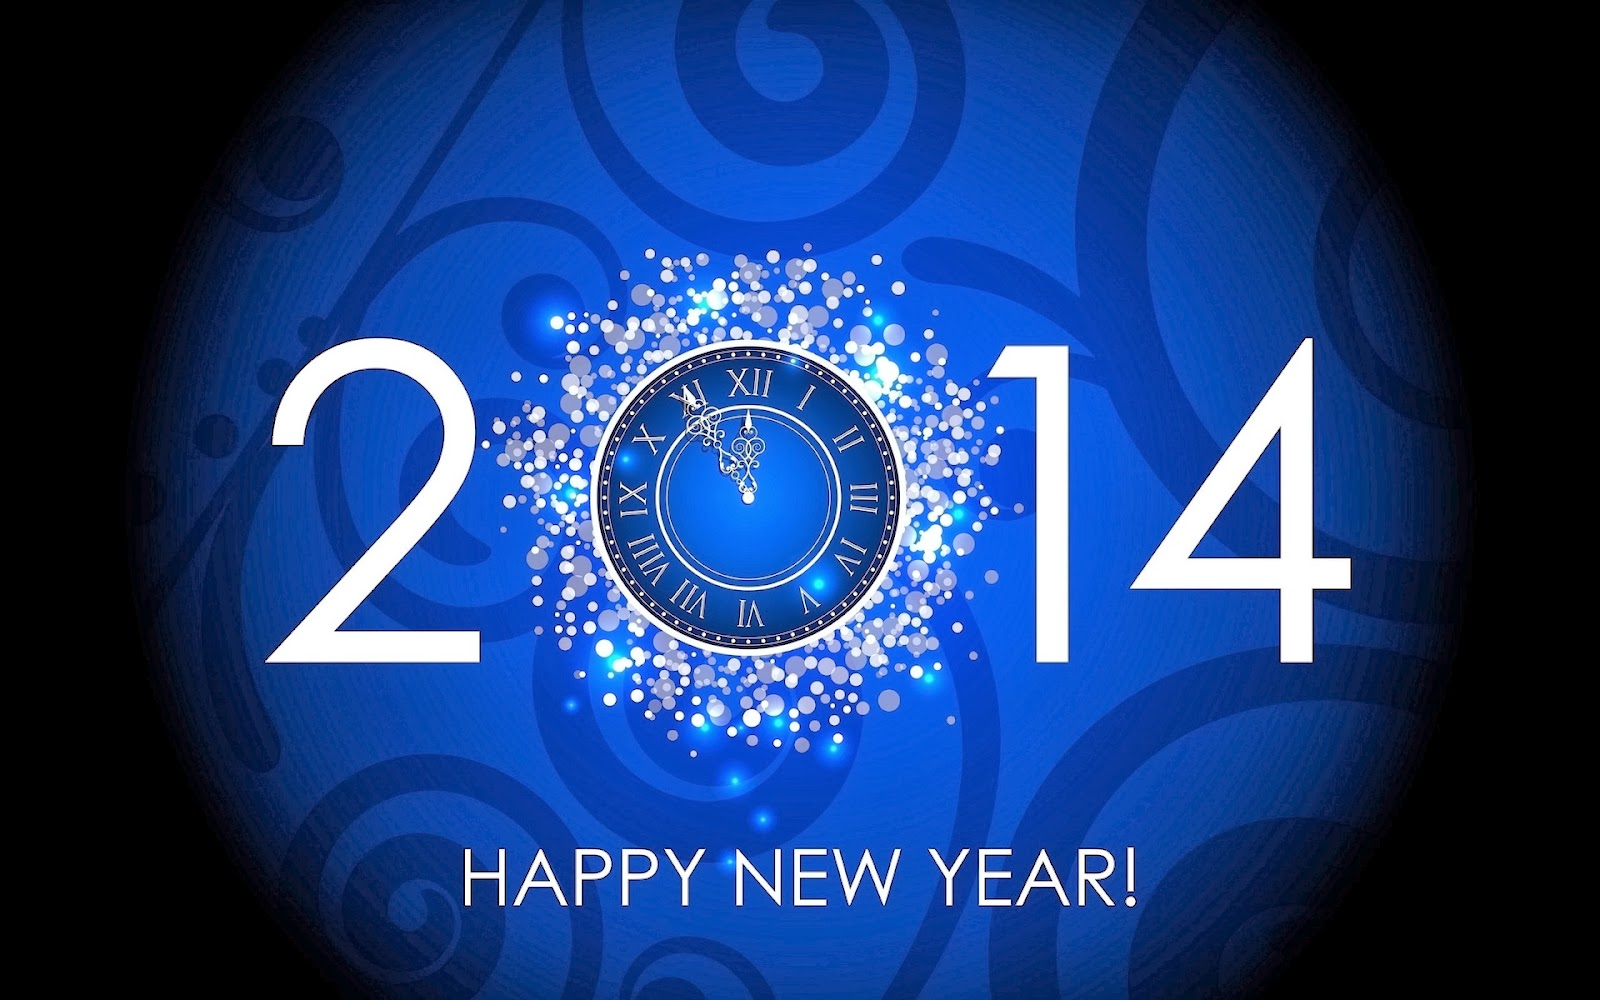 Happy New Year 2014.9 Sinhala New Year Greetings Cards 2014